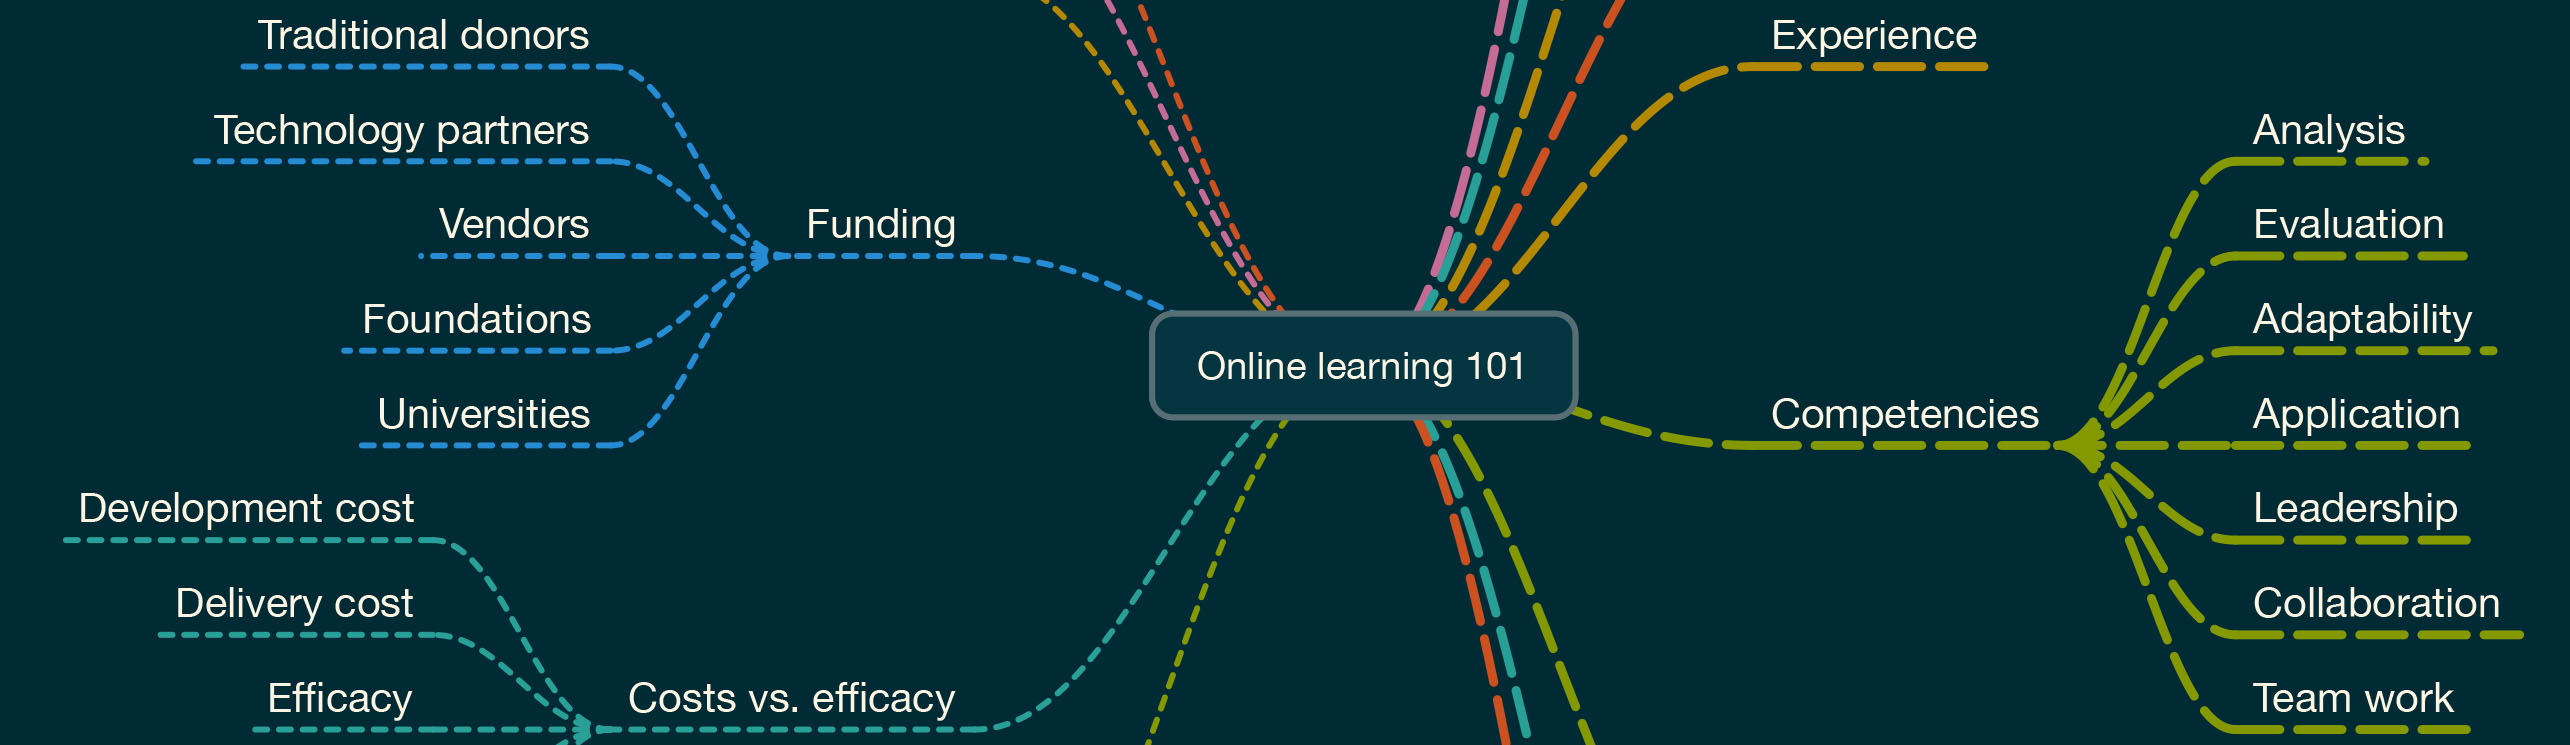 Online learning 101 mindmap excerpt